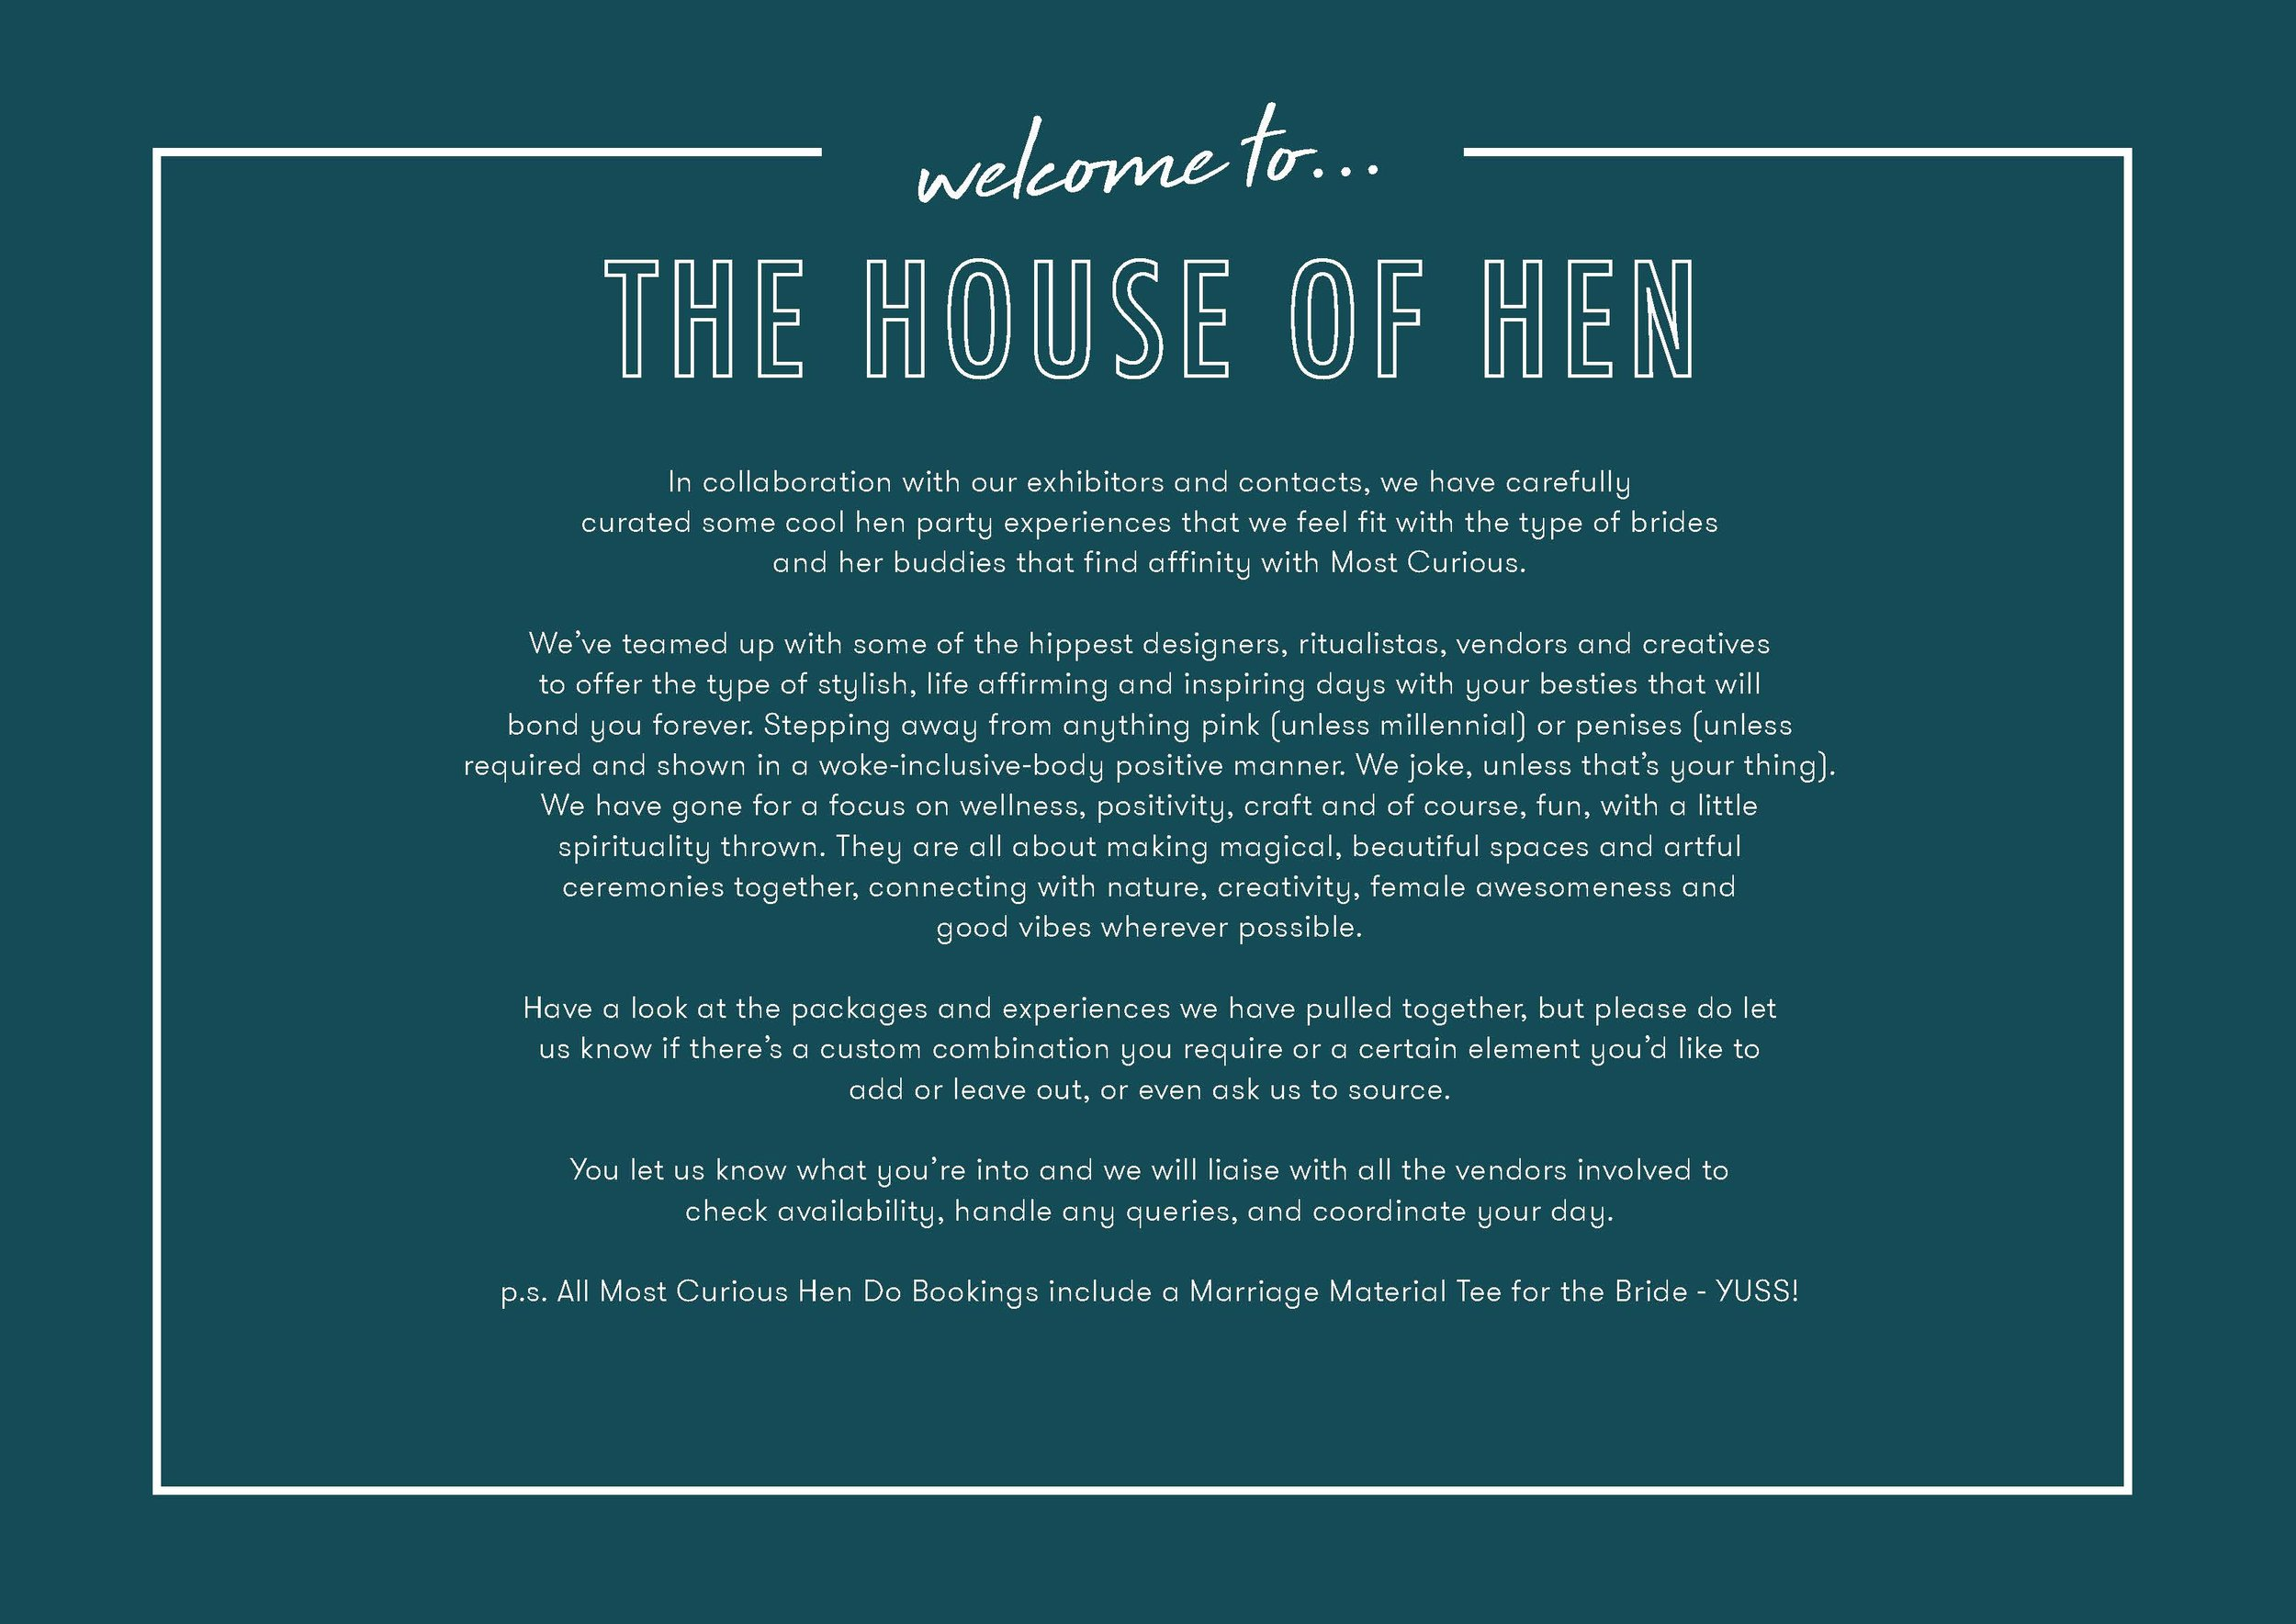 House of Hen_Packages Directory_Page_03.jpg